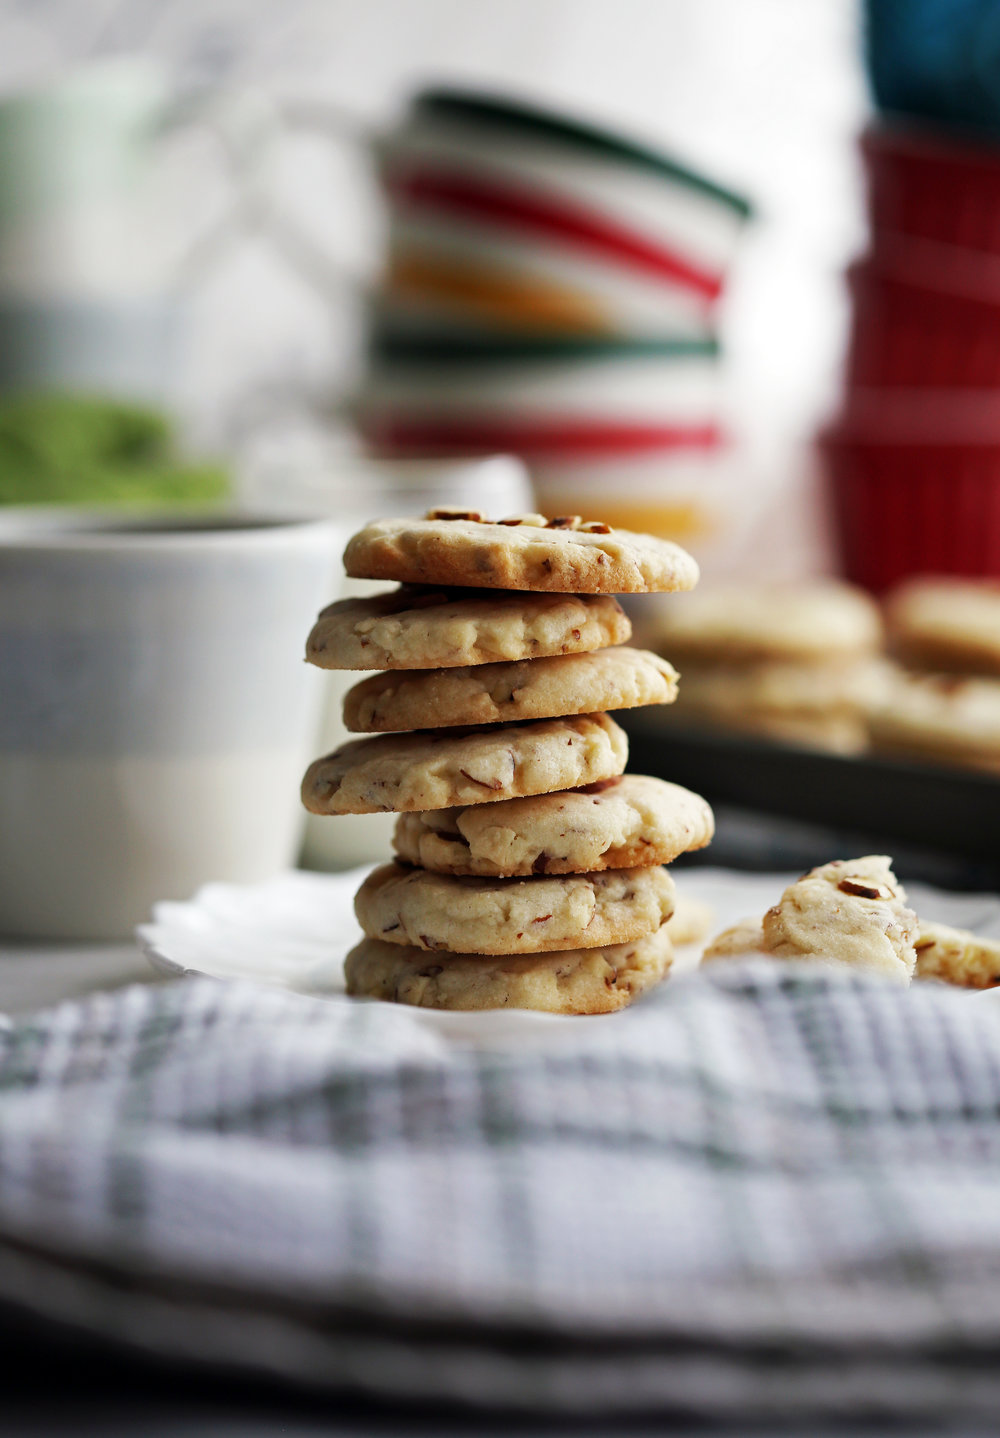 A stack of seven crunchy almond cookies on a white plate.